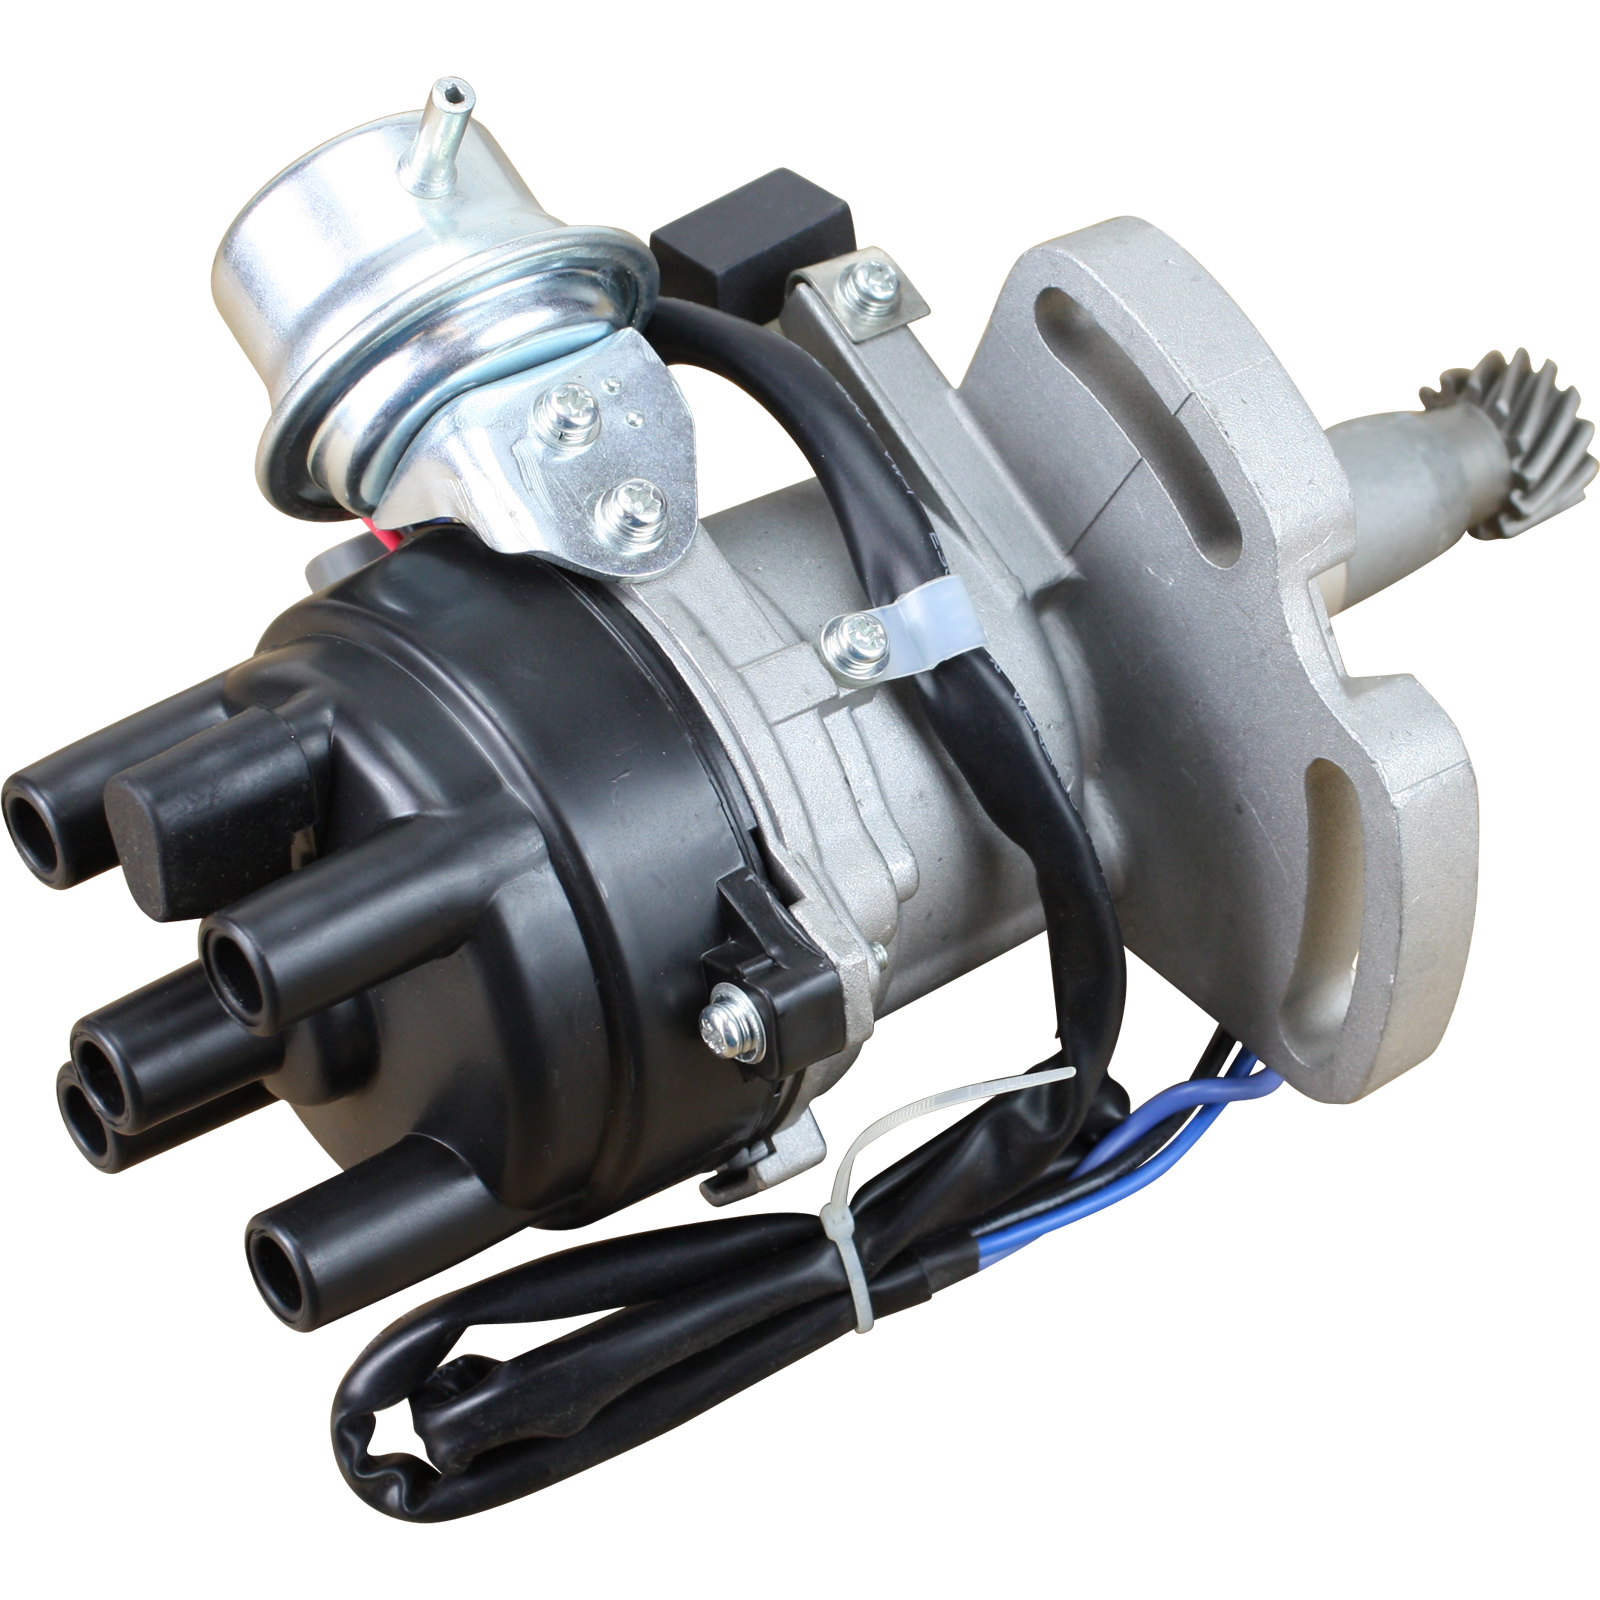 Brand New Complete Ignition Distributor w//Cap /& Rotor for 1989 Mazda B2600 2.6L L4 SOHC MZ52 T2T75072 31-887 OEM FIT D5072